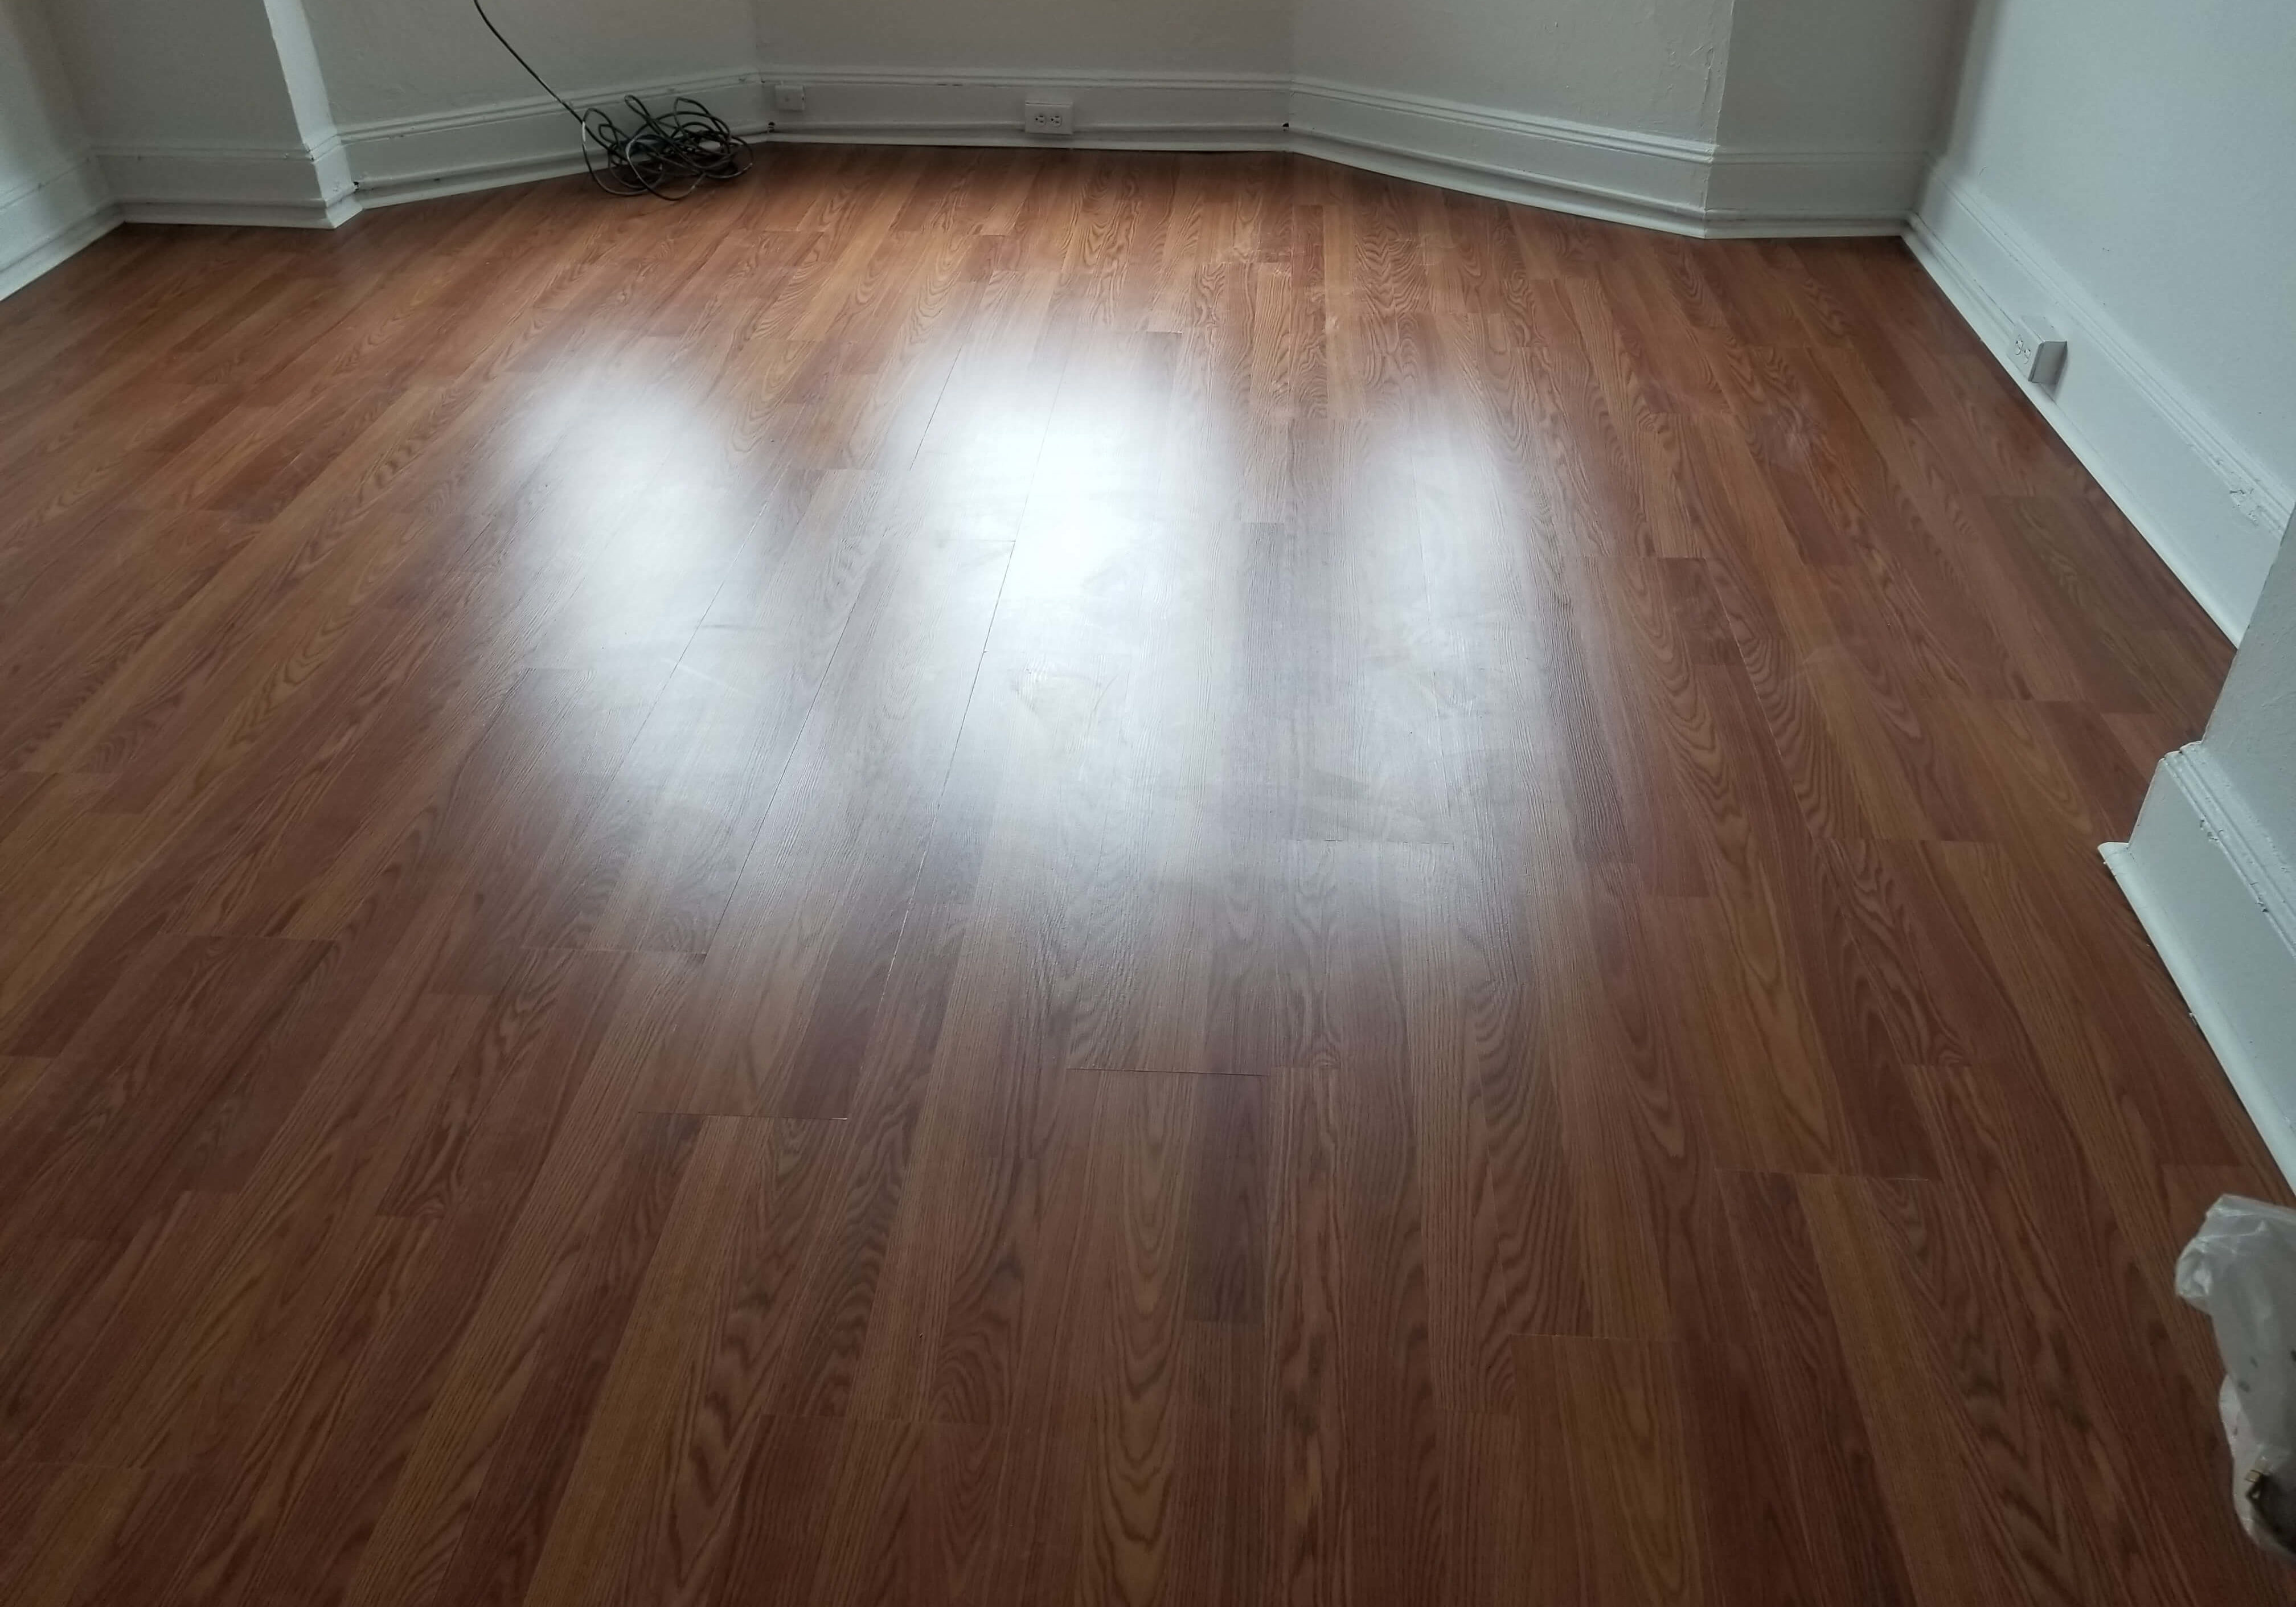 Staining Service